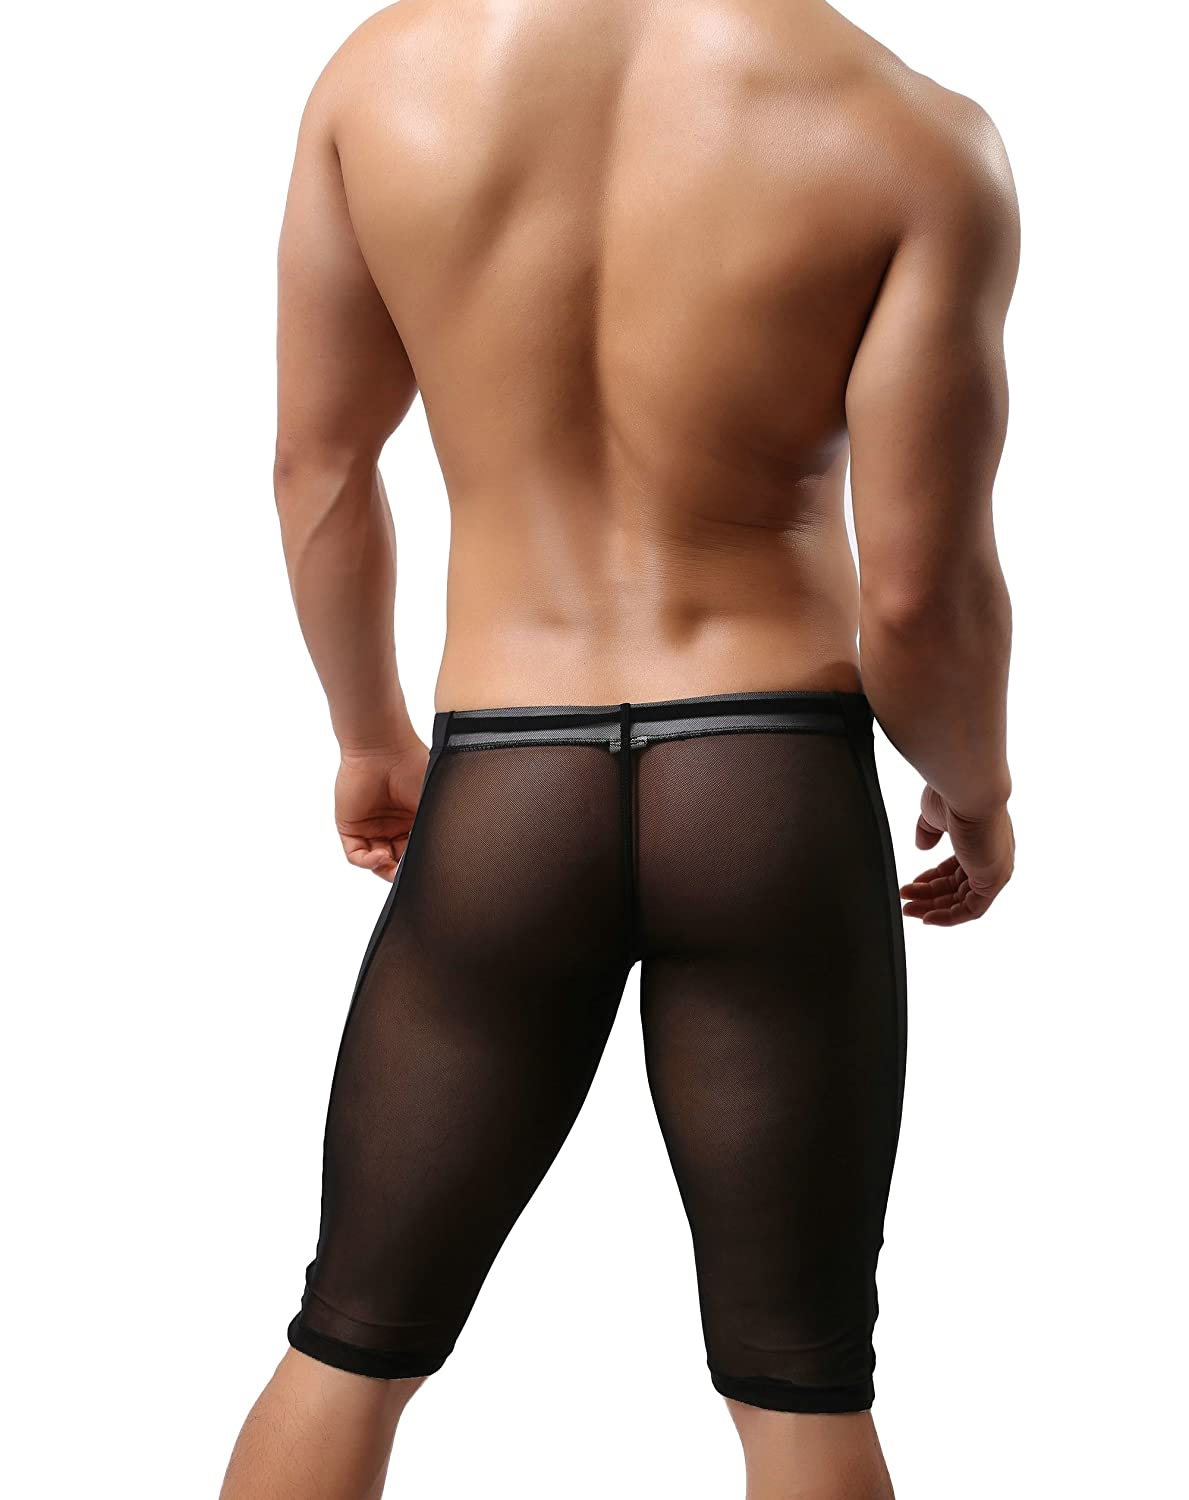 MuscleMate/® UltraHot Mens Compression Shorts UltraHot Multi-Functional Sports Mens Shorts